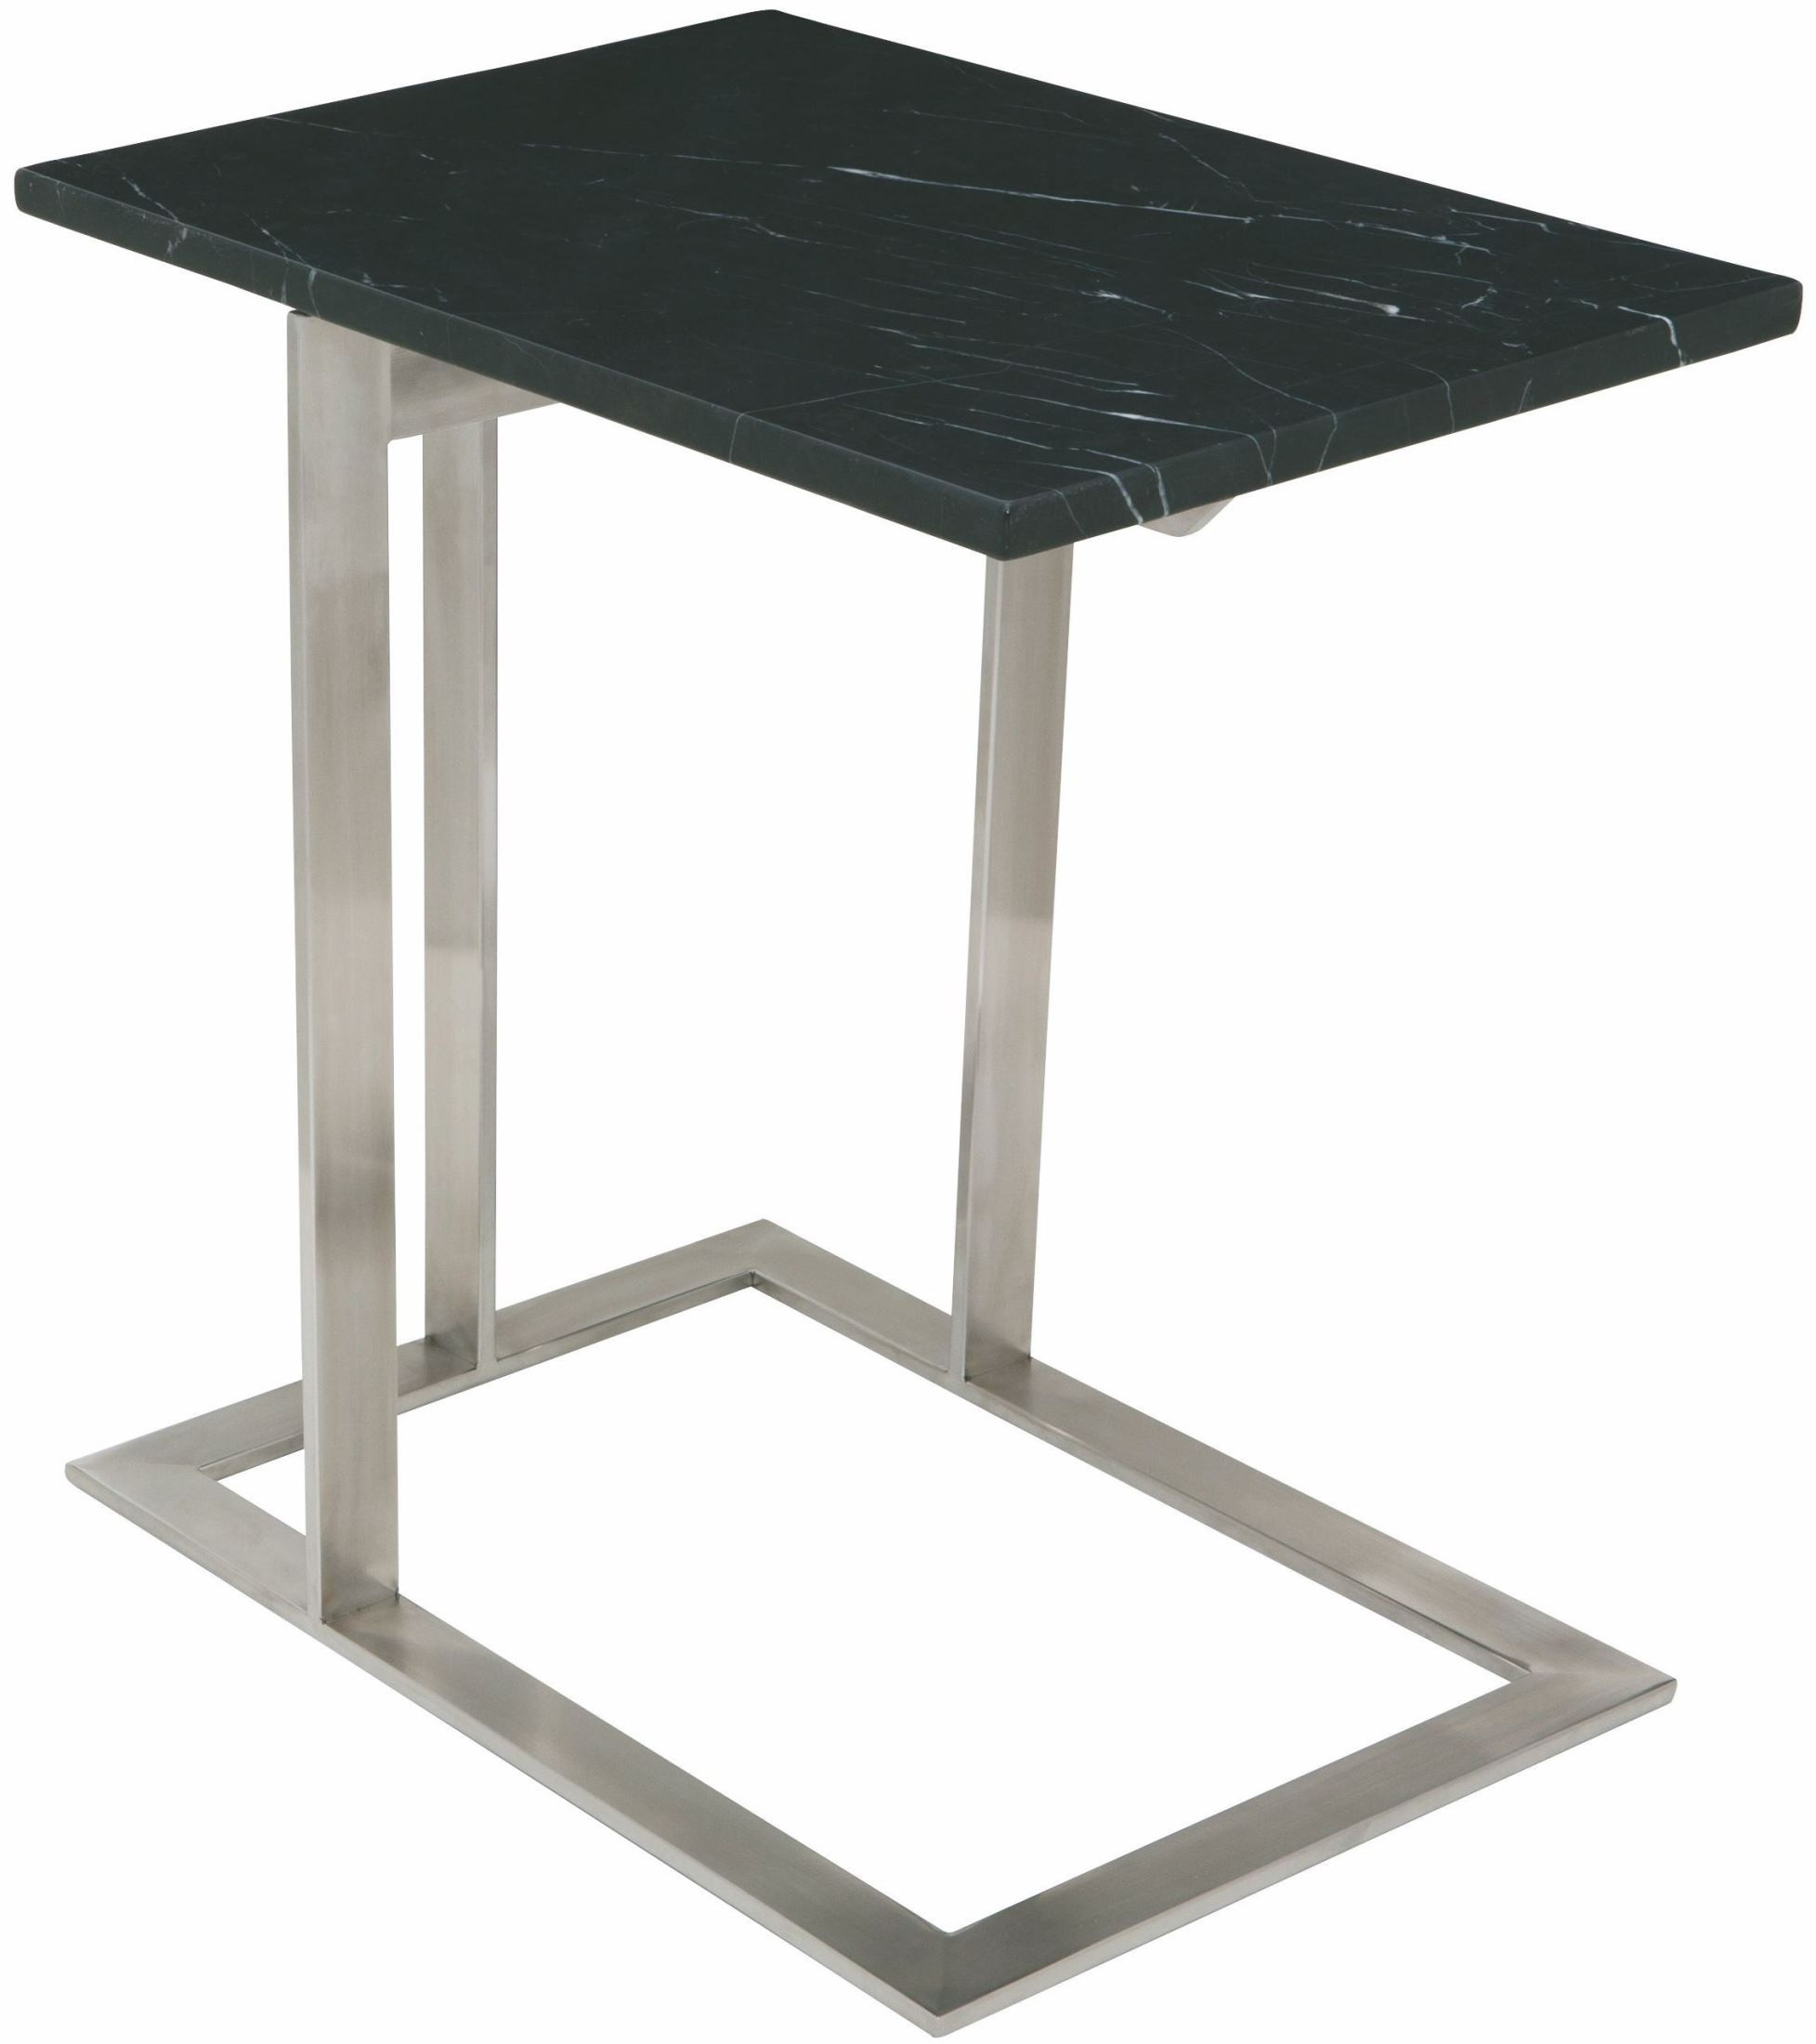 Dell black stone side table hgta378 nuevo for Black side table